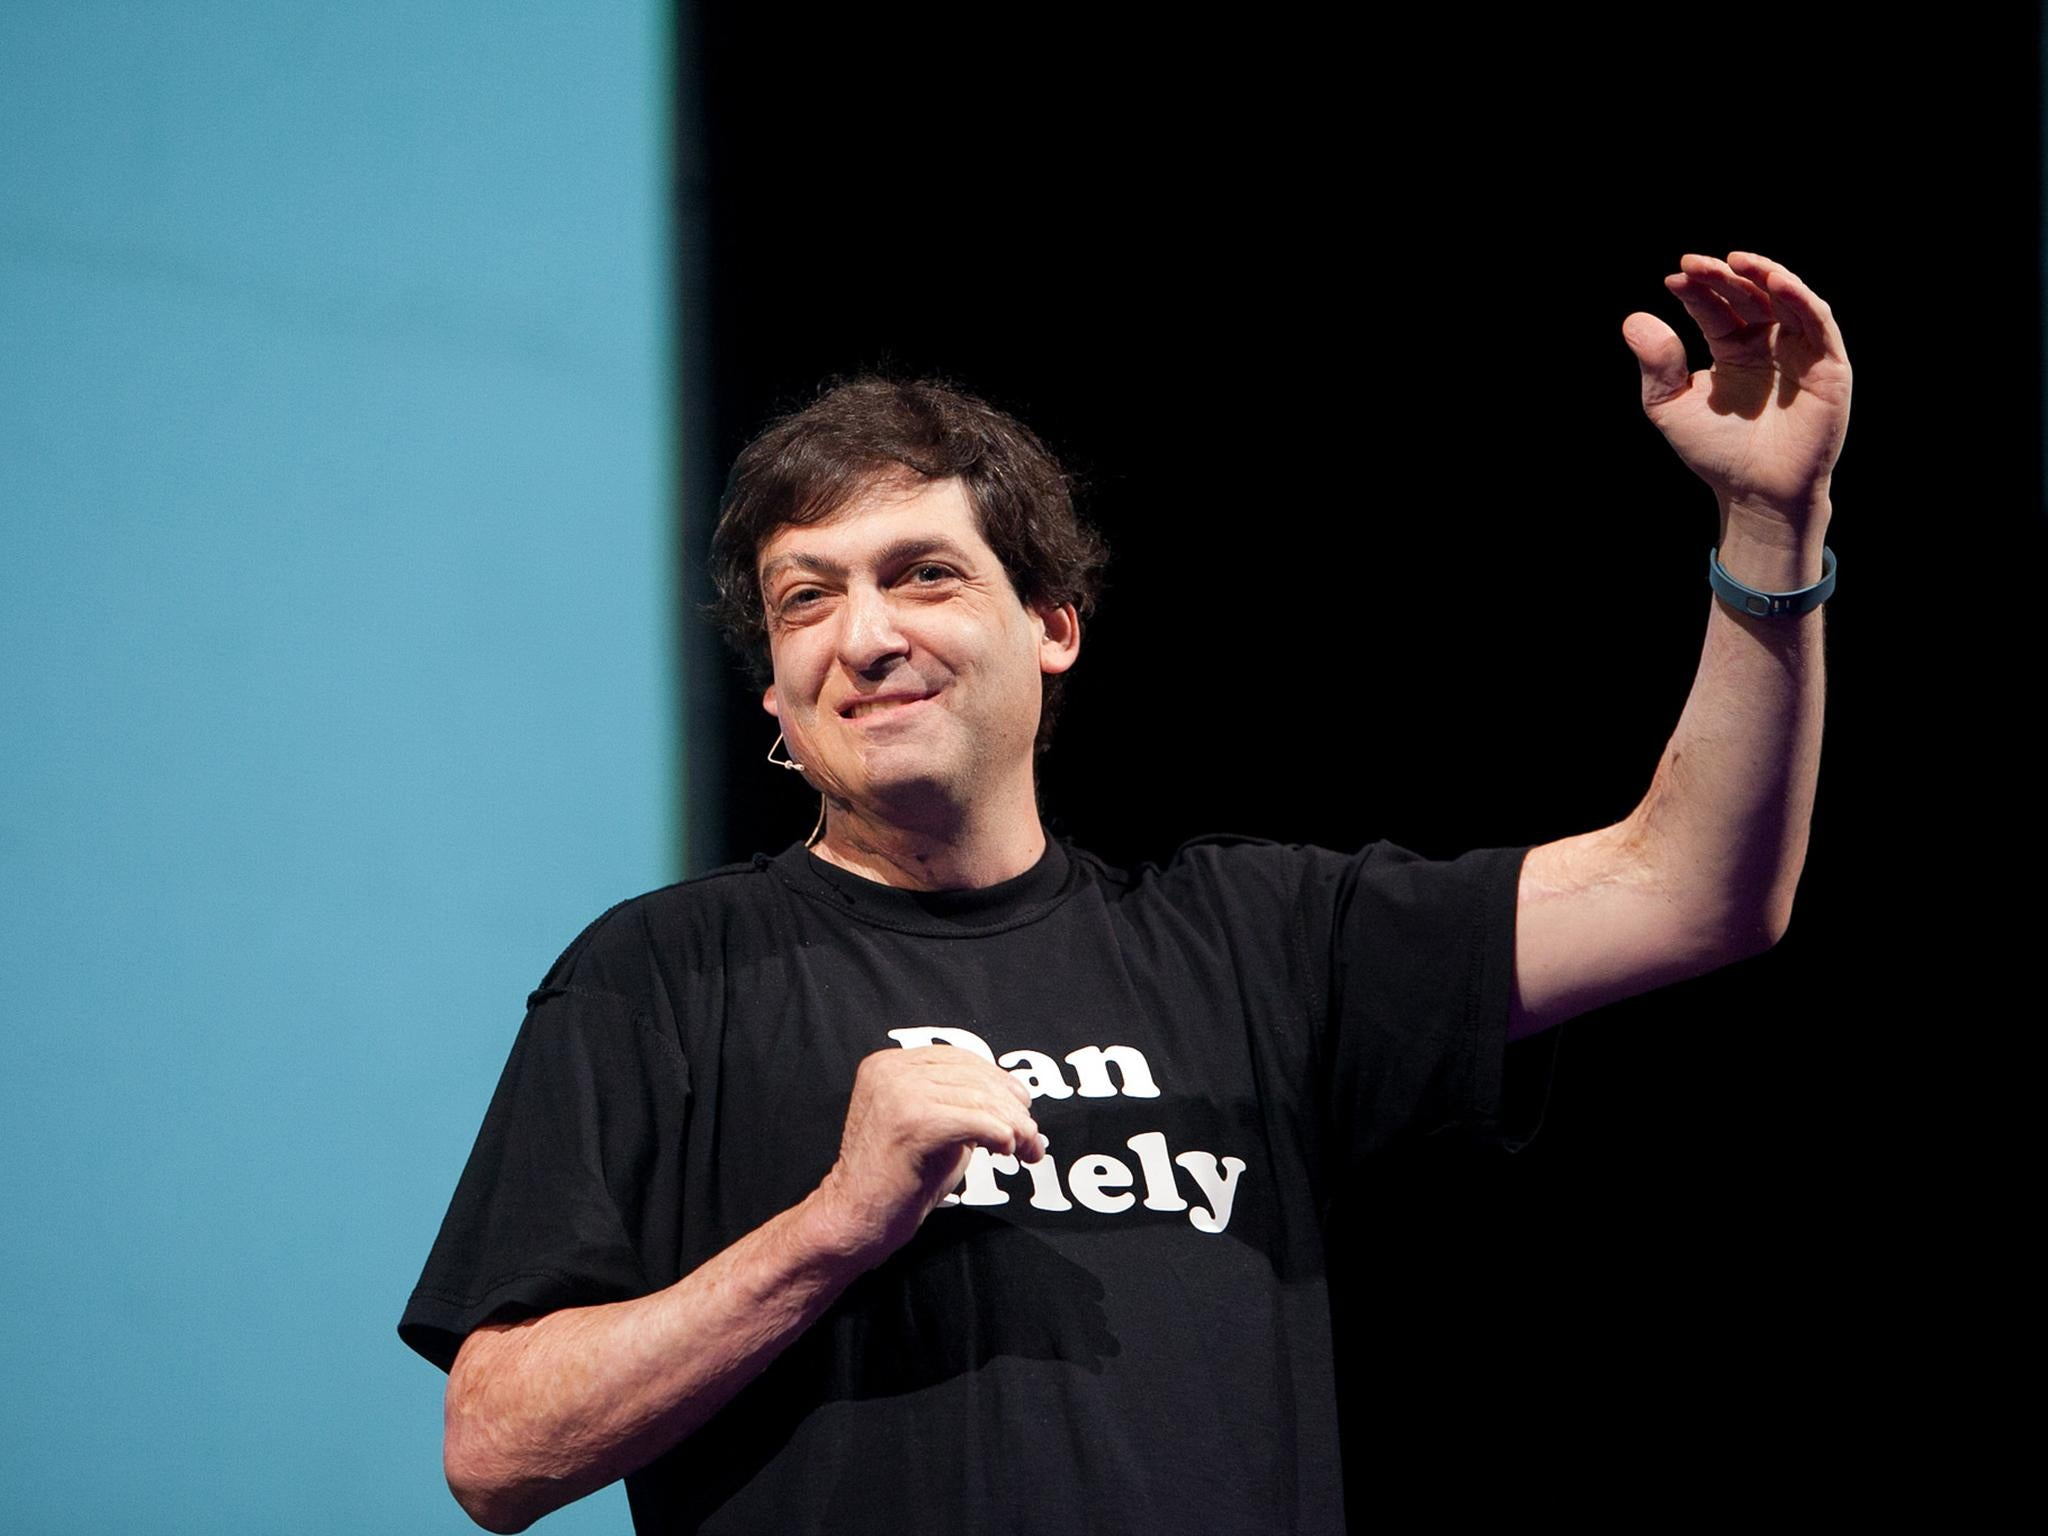 dan ariely accident